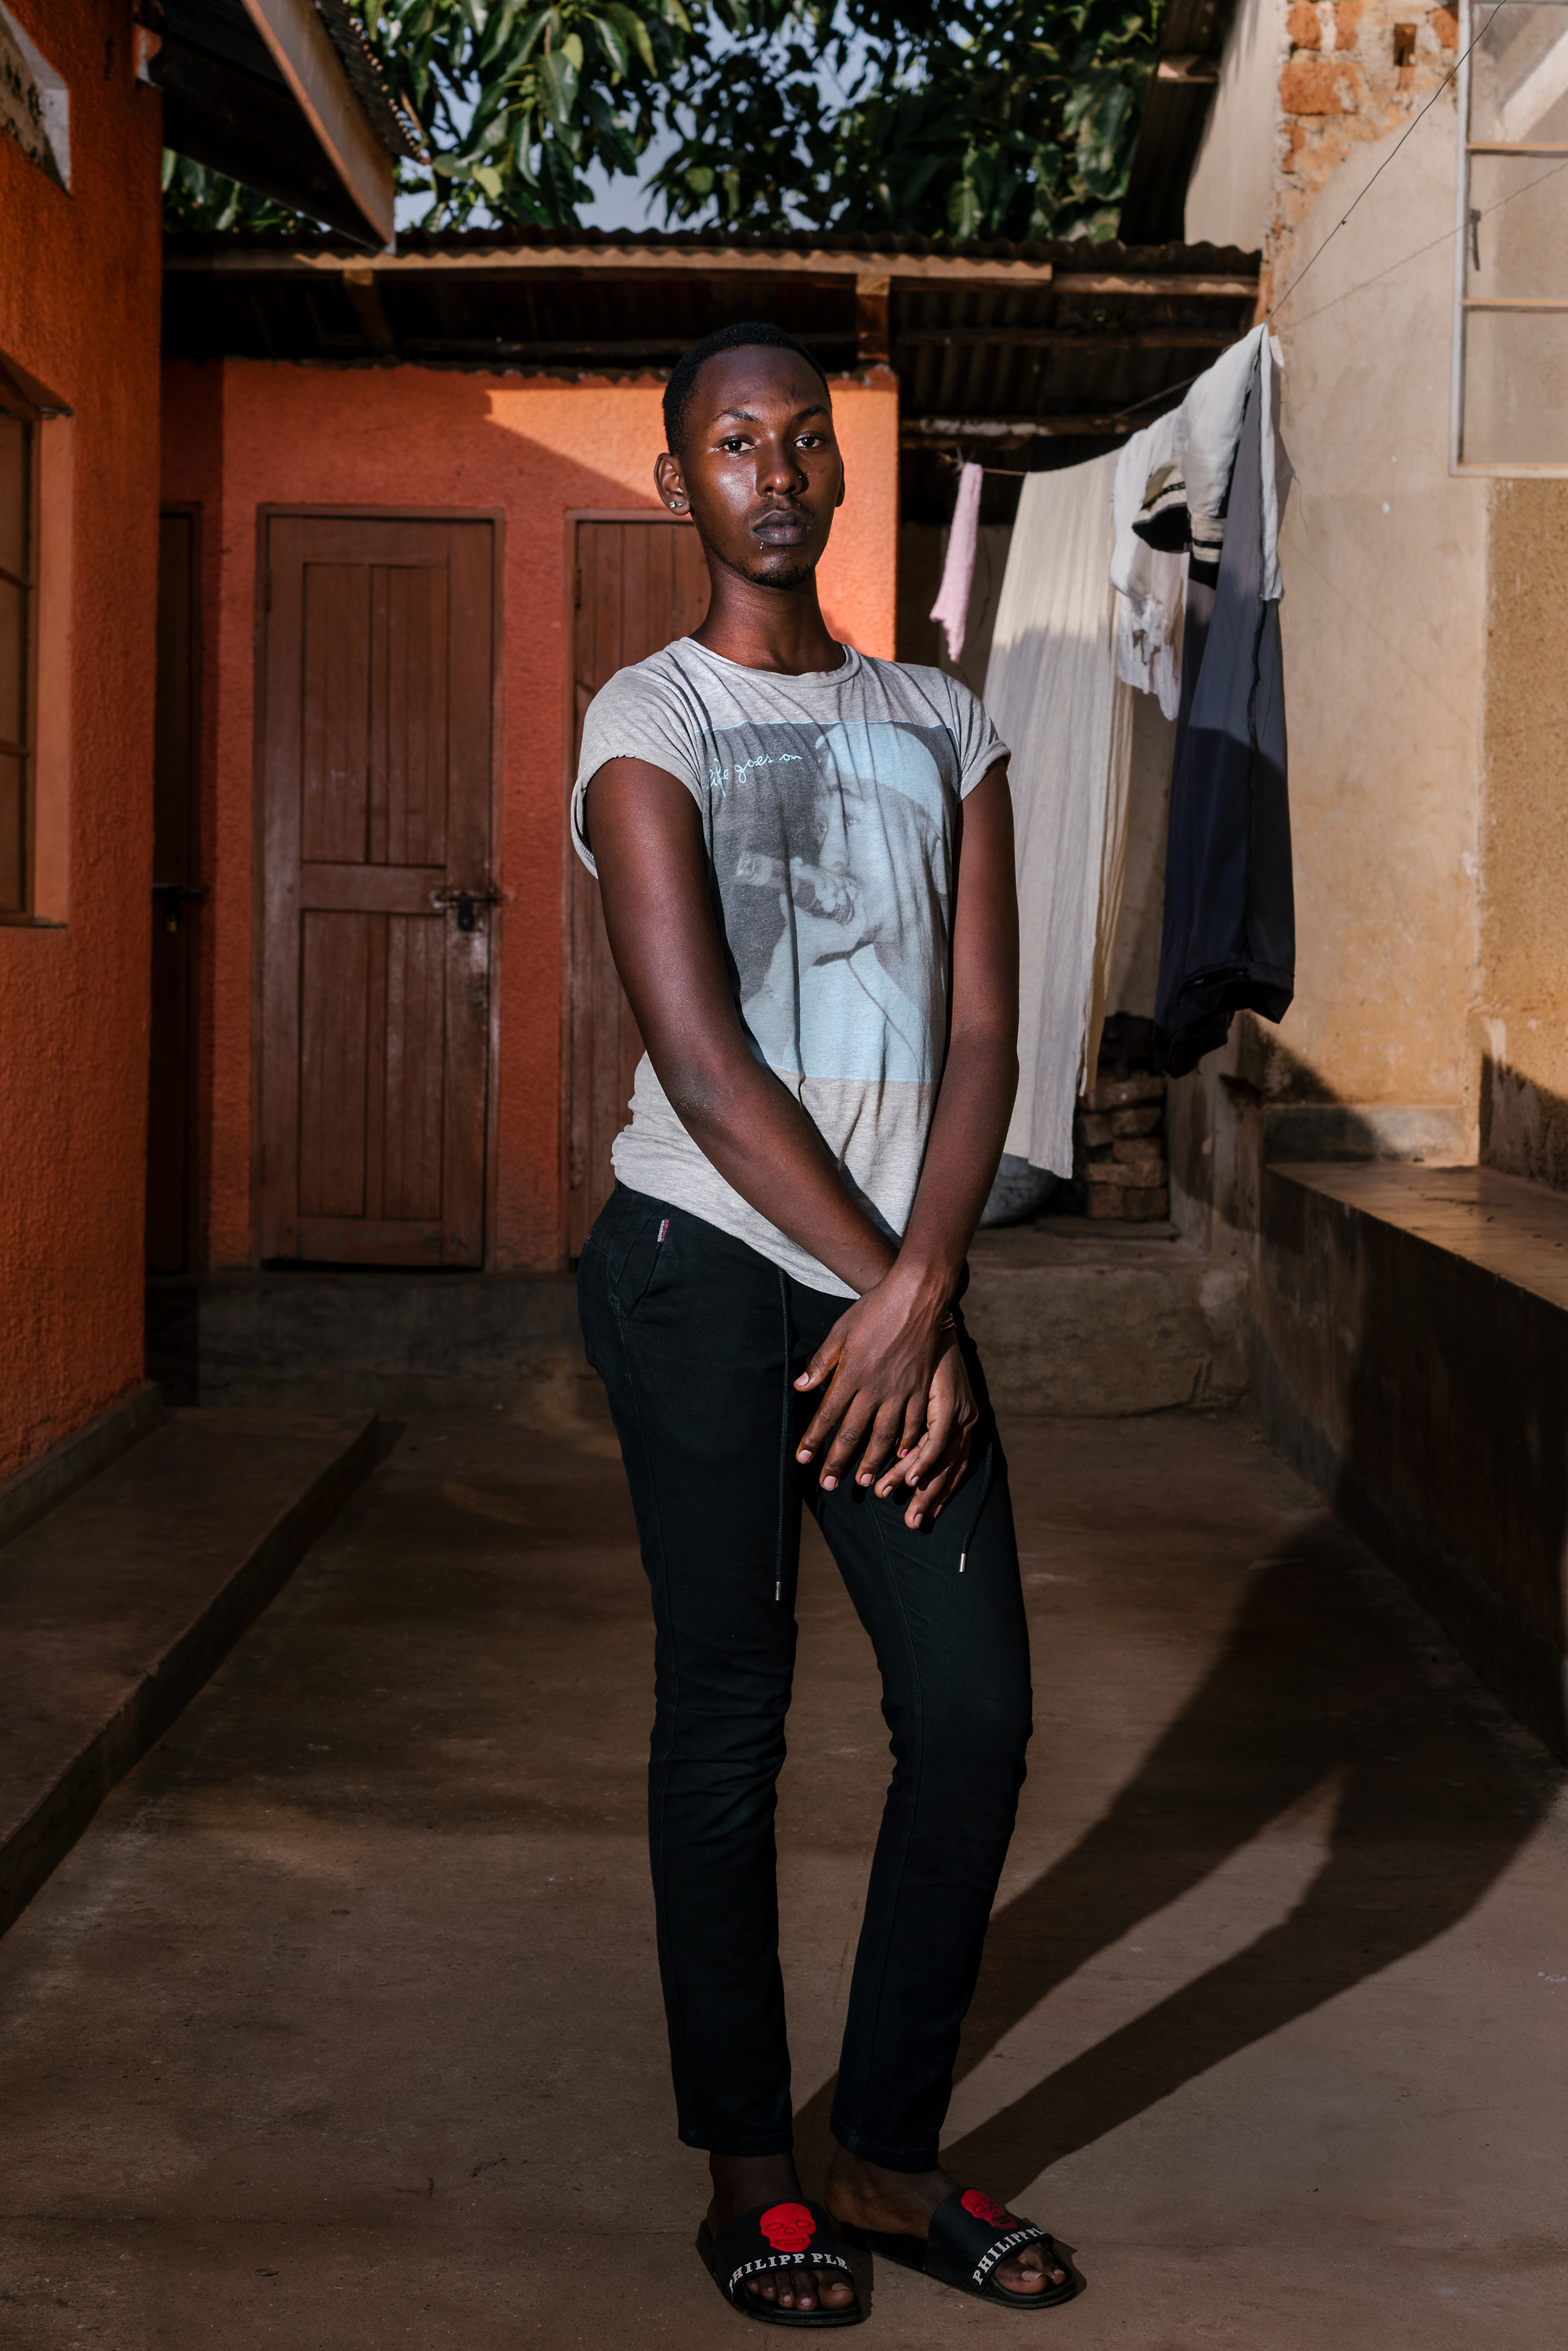 Javan poses for a portrait near her home in Kampala.